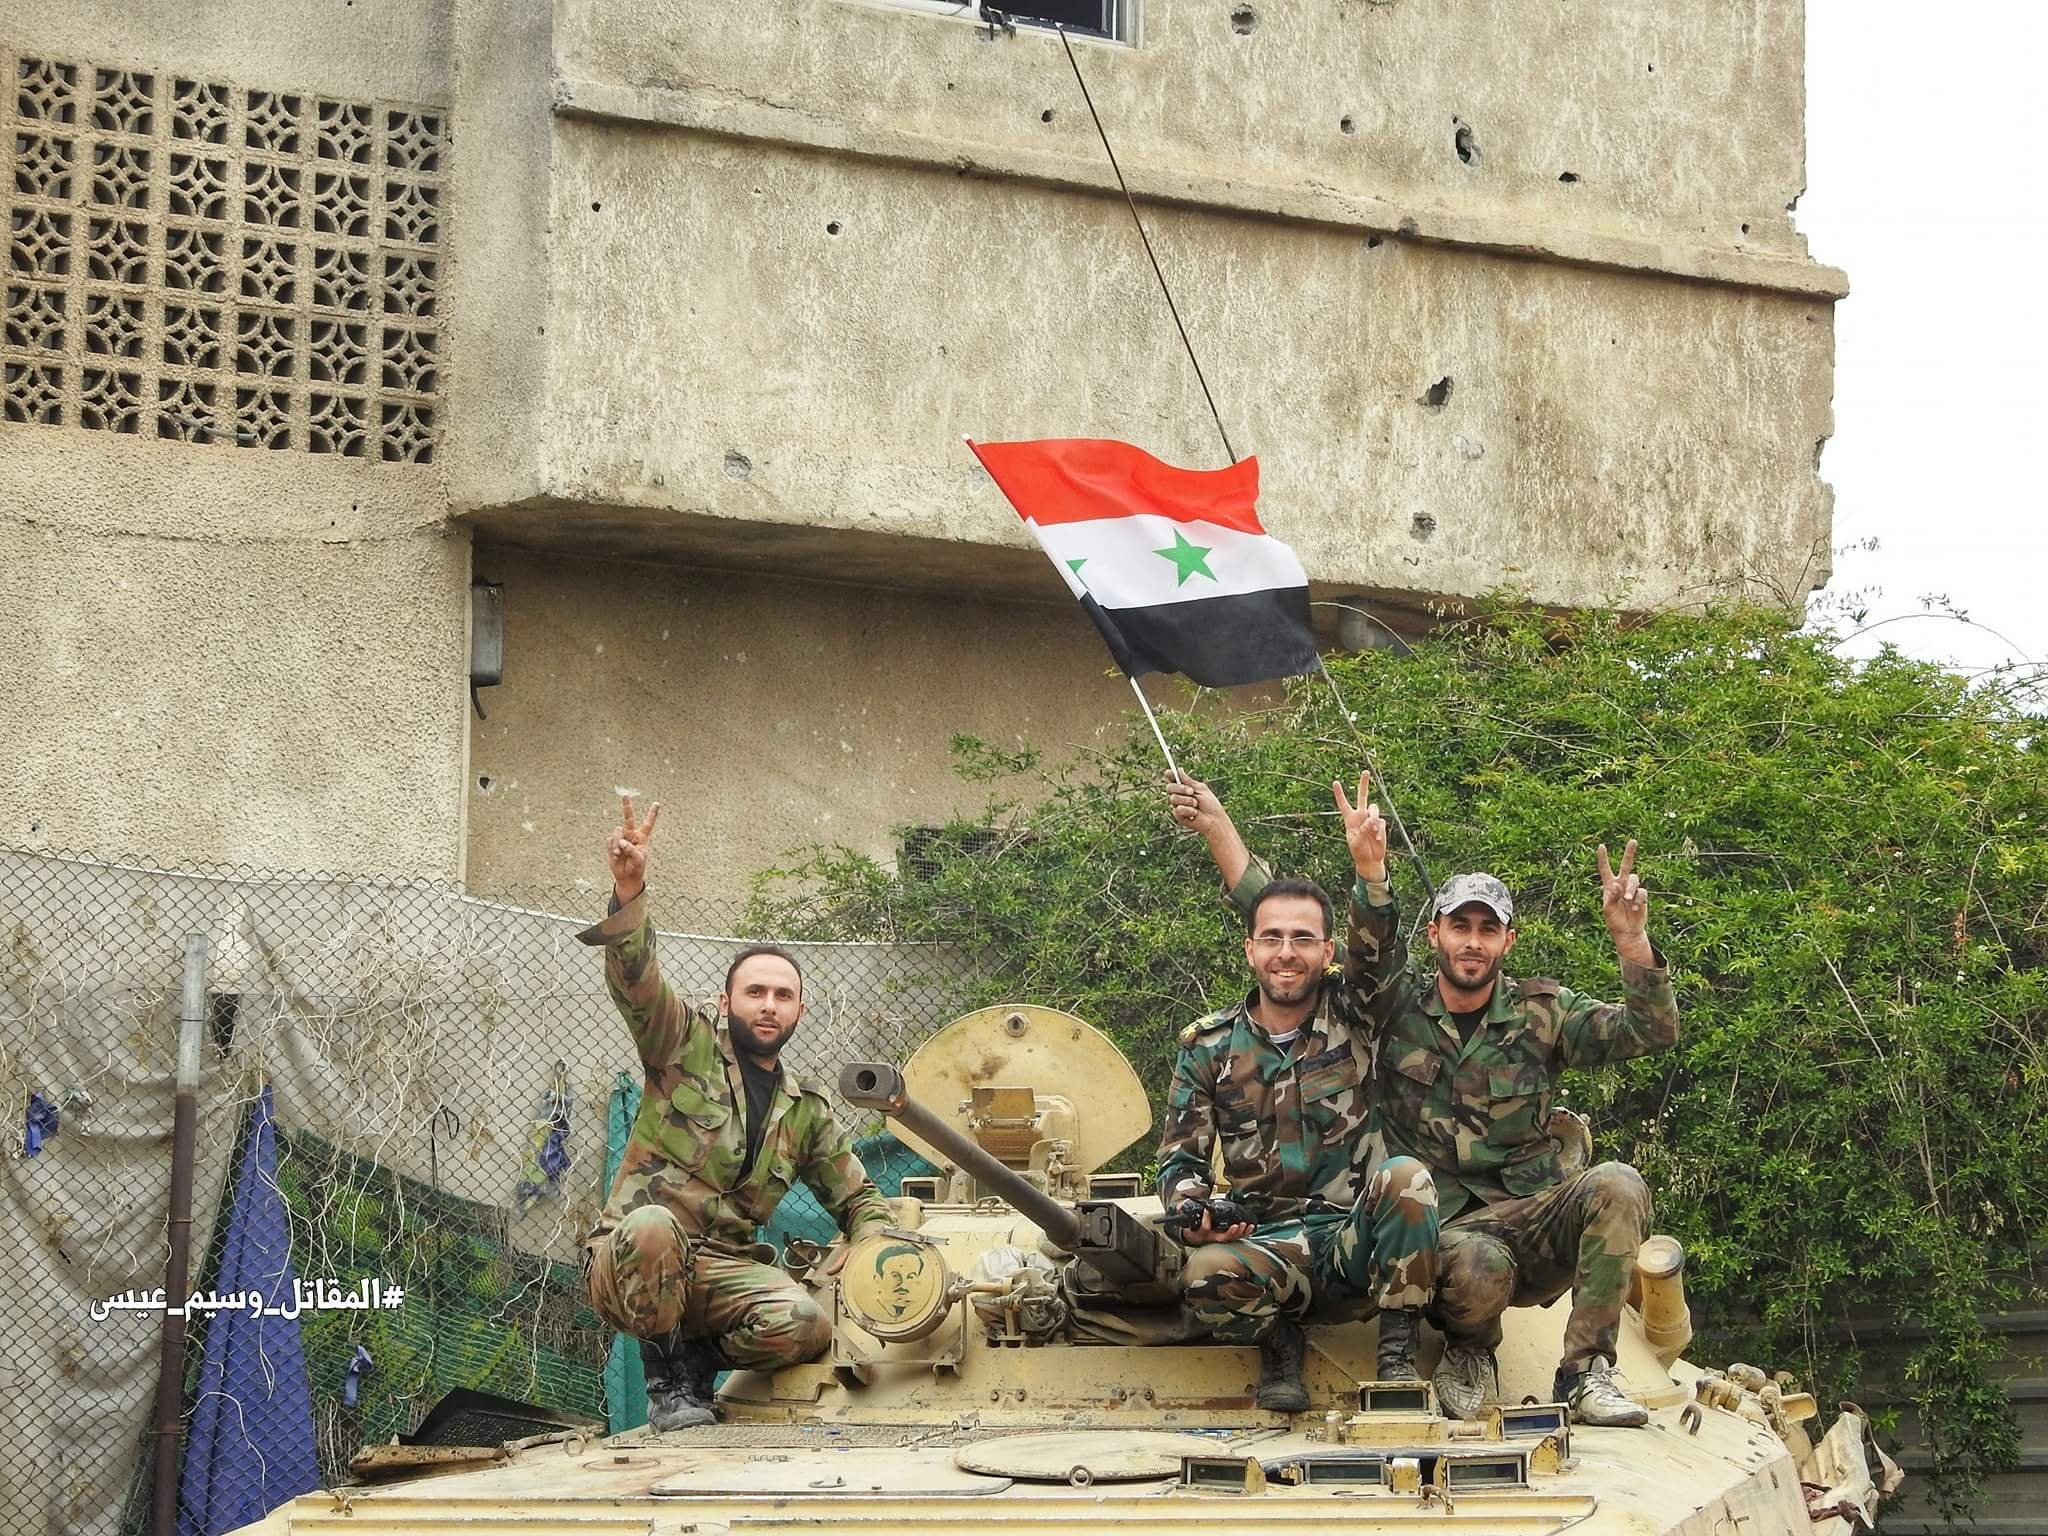 Temporary Ceasefire Is Reached In Southern Damascus. No Evacuation